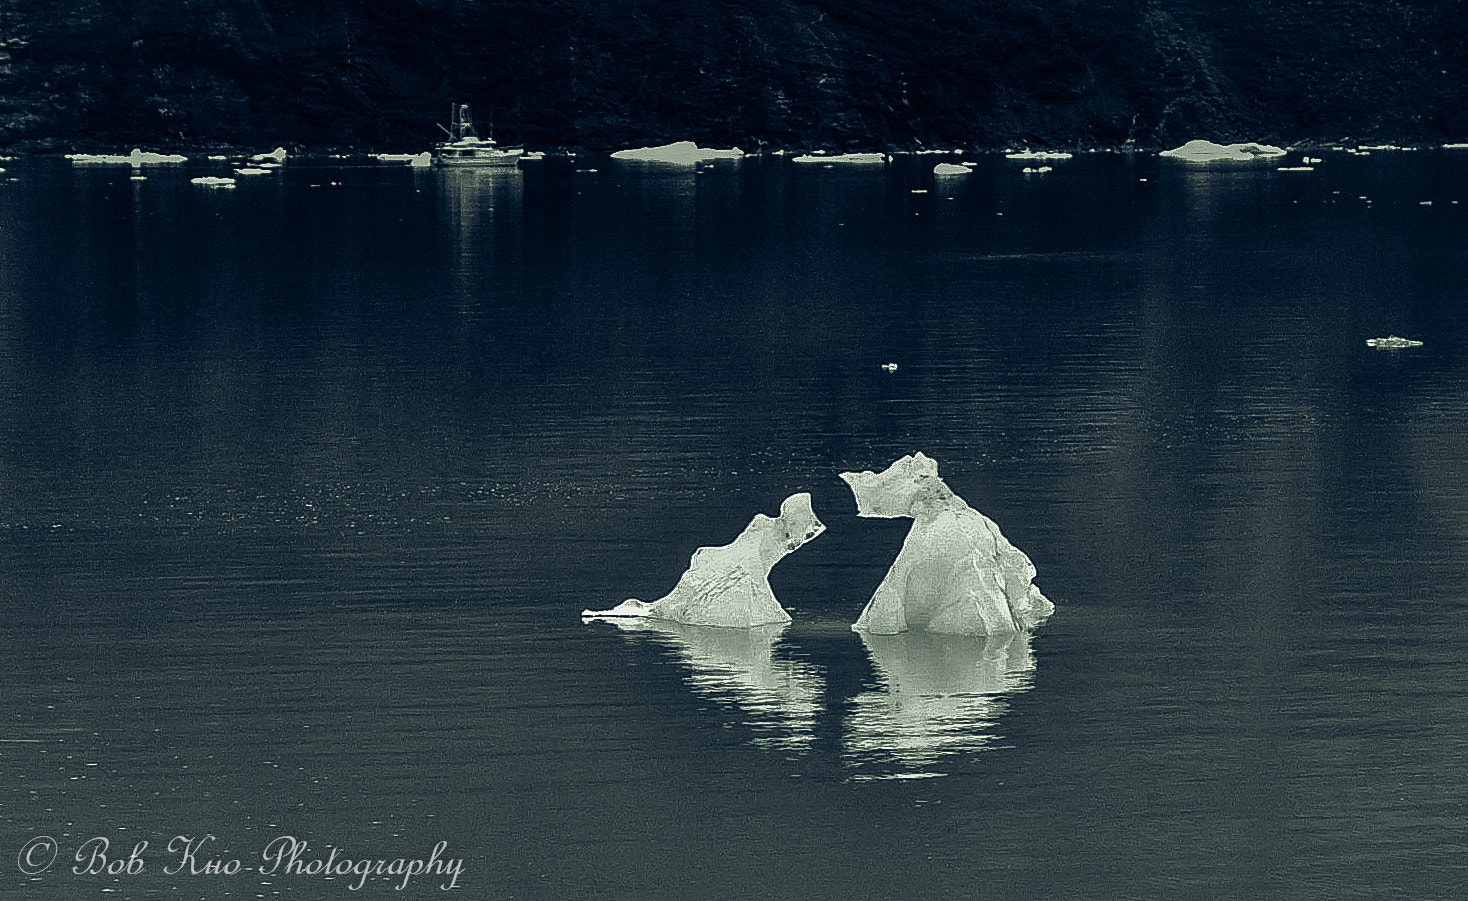 Photograph Conversation in ice by Bob Kuo on 500px